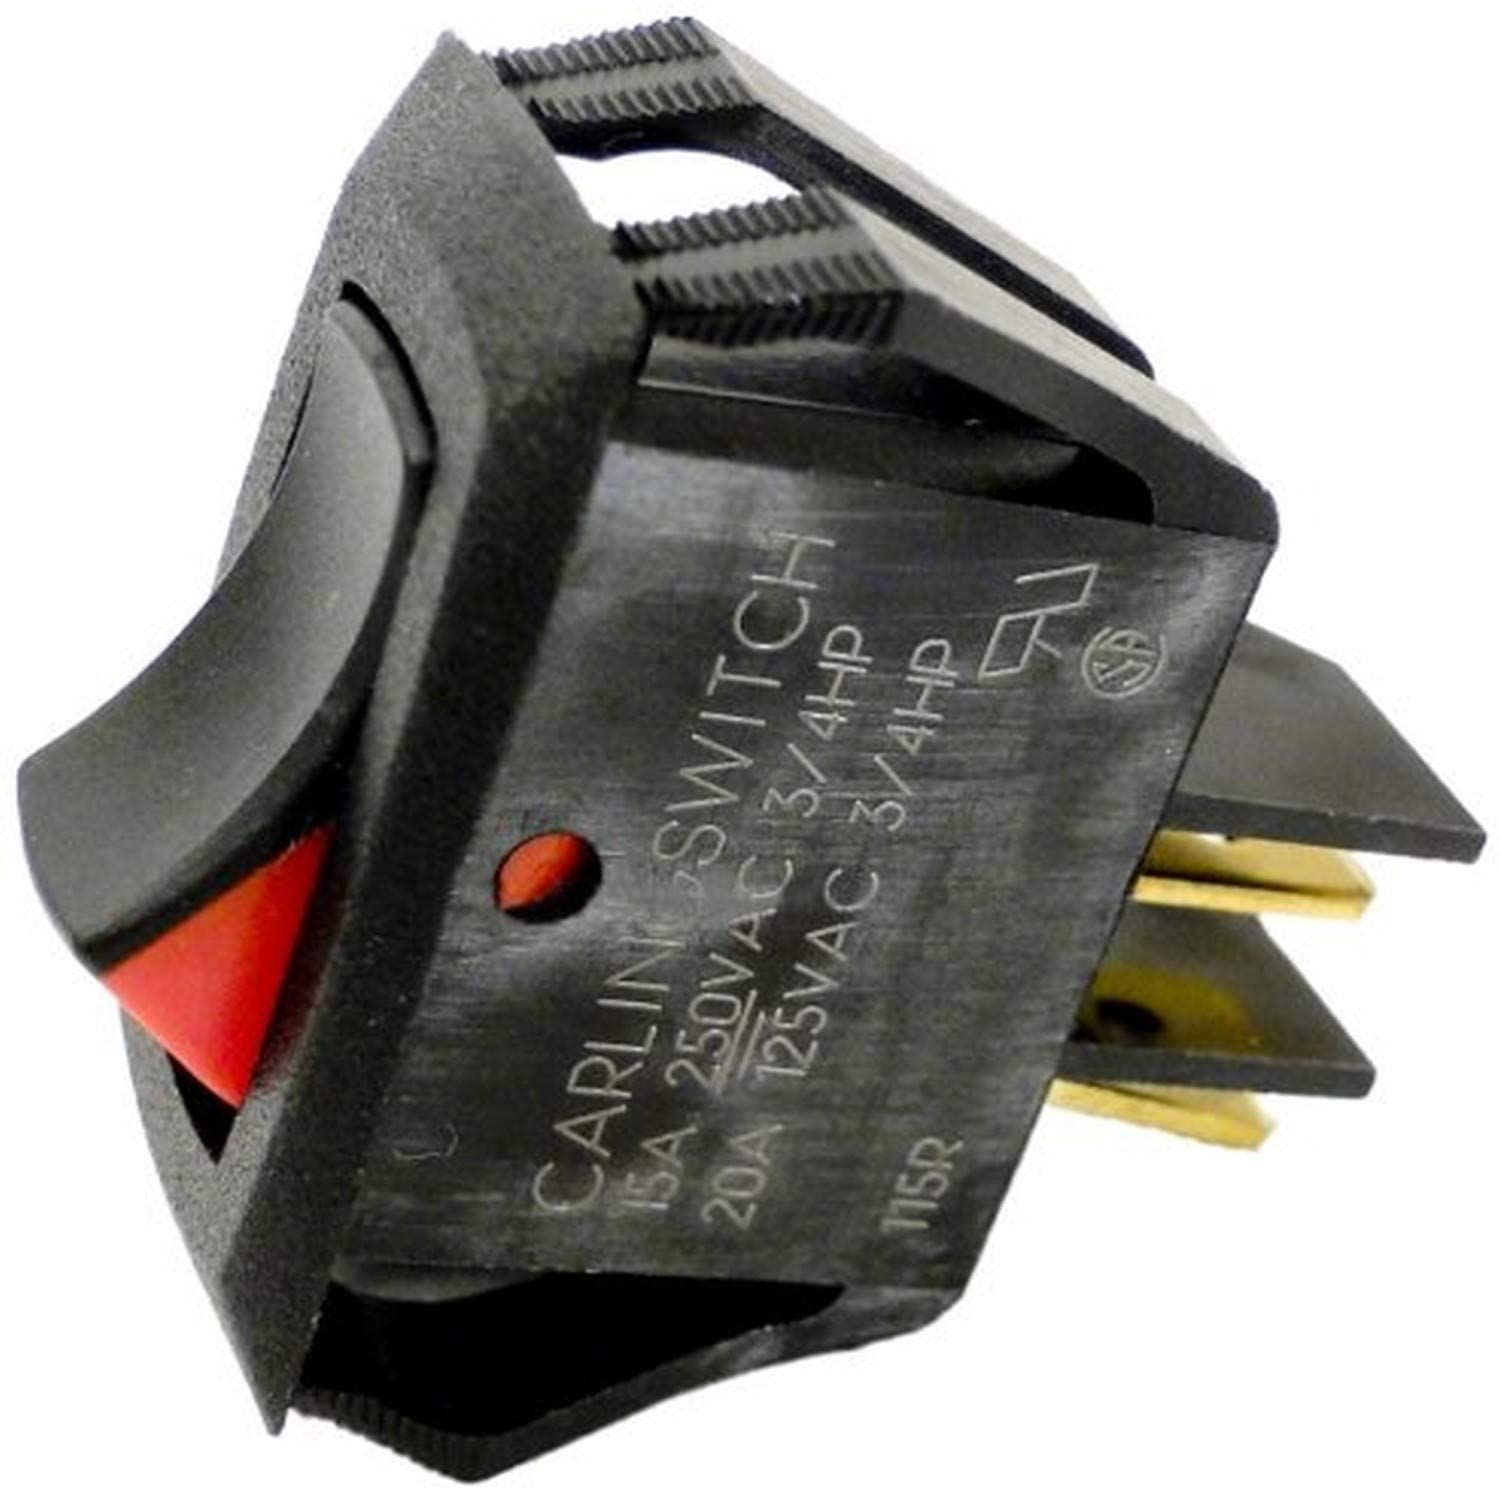 Hayward SPX1500S8 On/off Motor Switch Replacement for Hayward Abg and Power-Flo Pumps